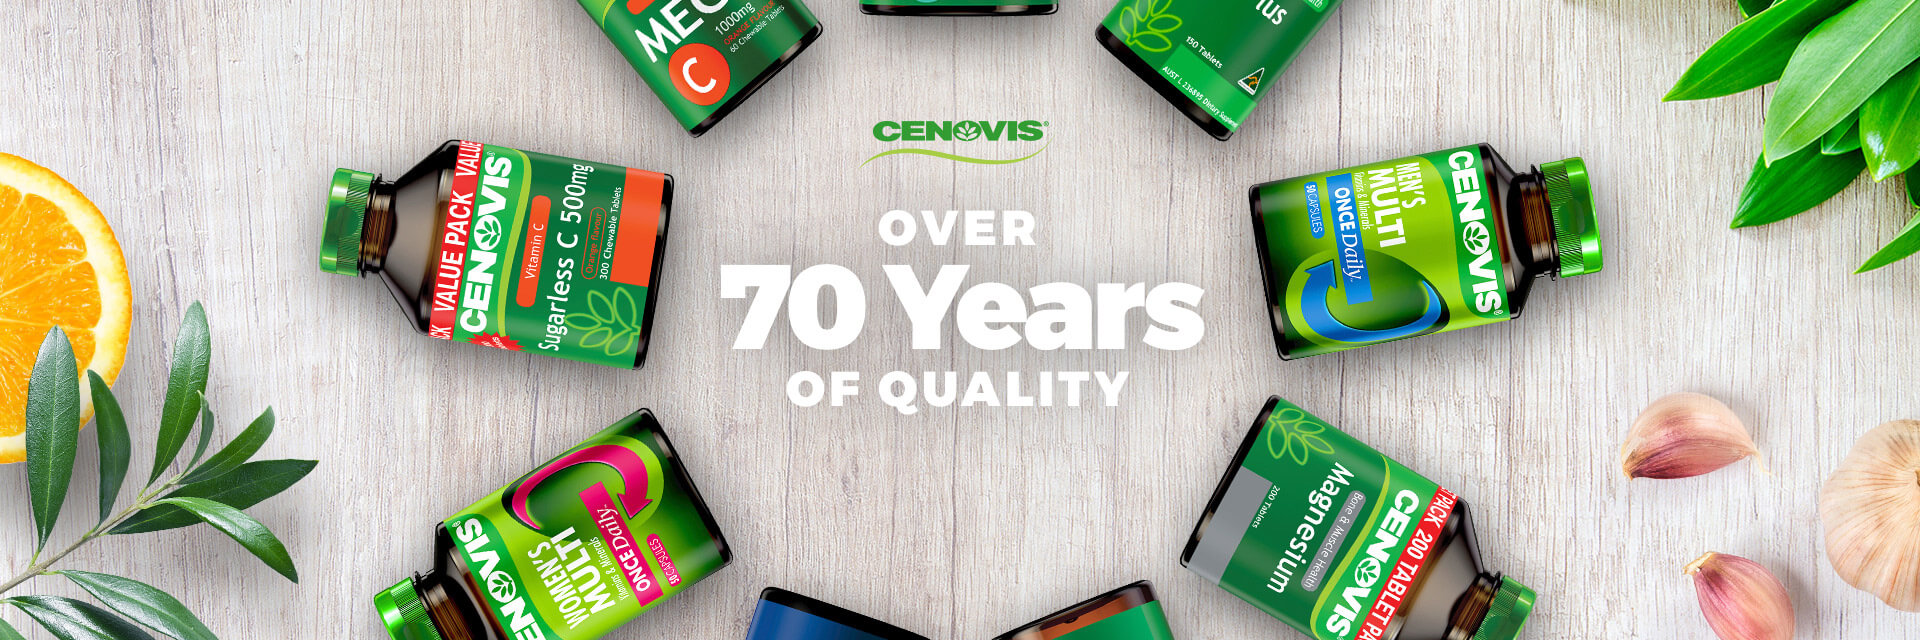 Cenovis - over 70 years of quality